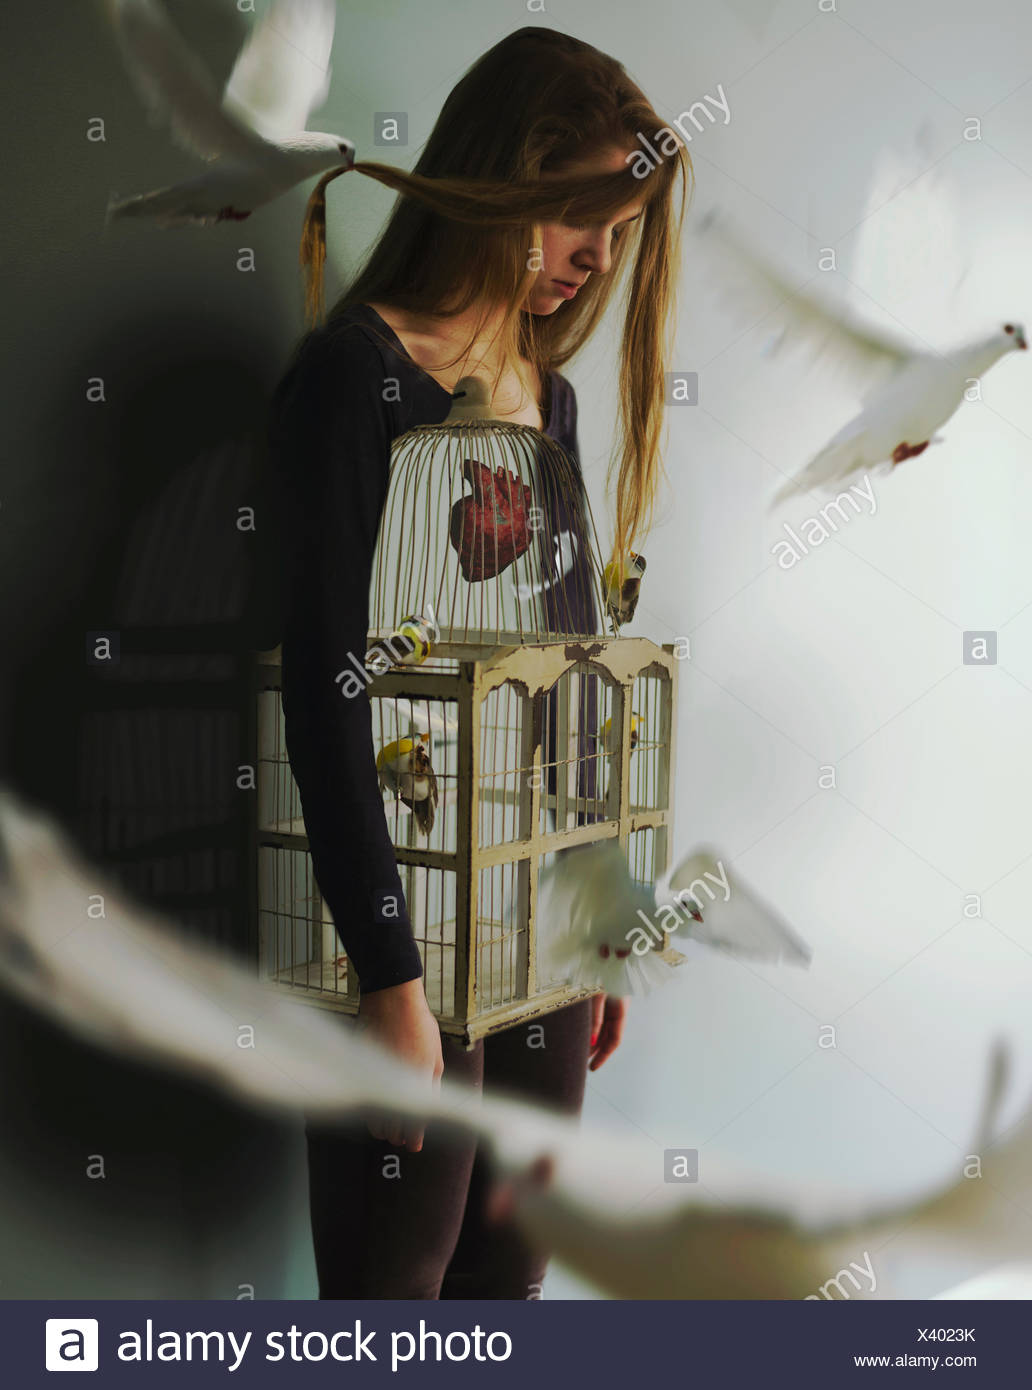 Woman with birdcage and doves - Stock Image